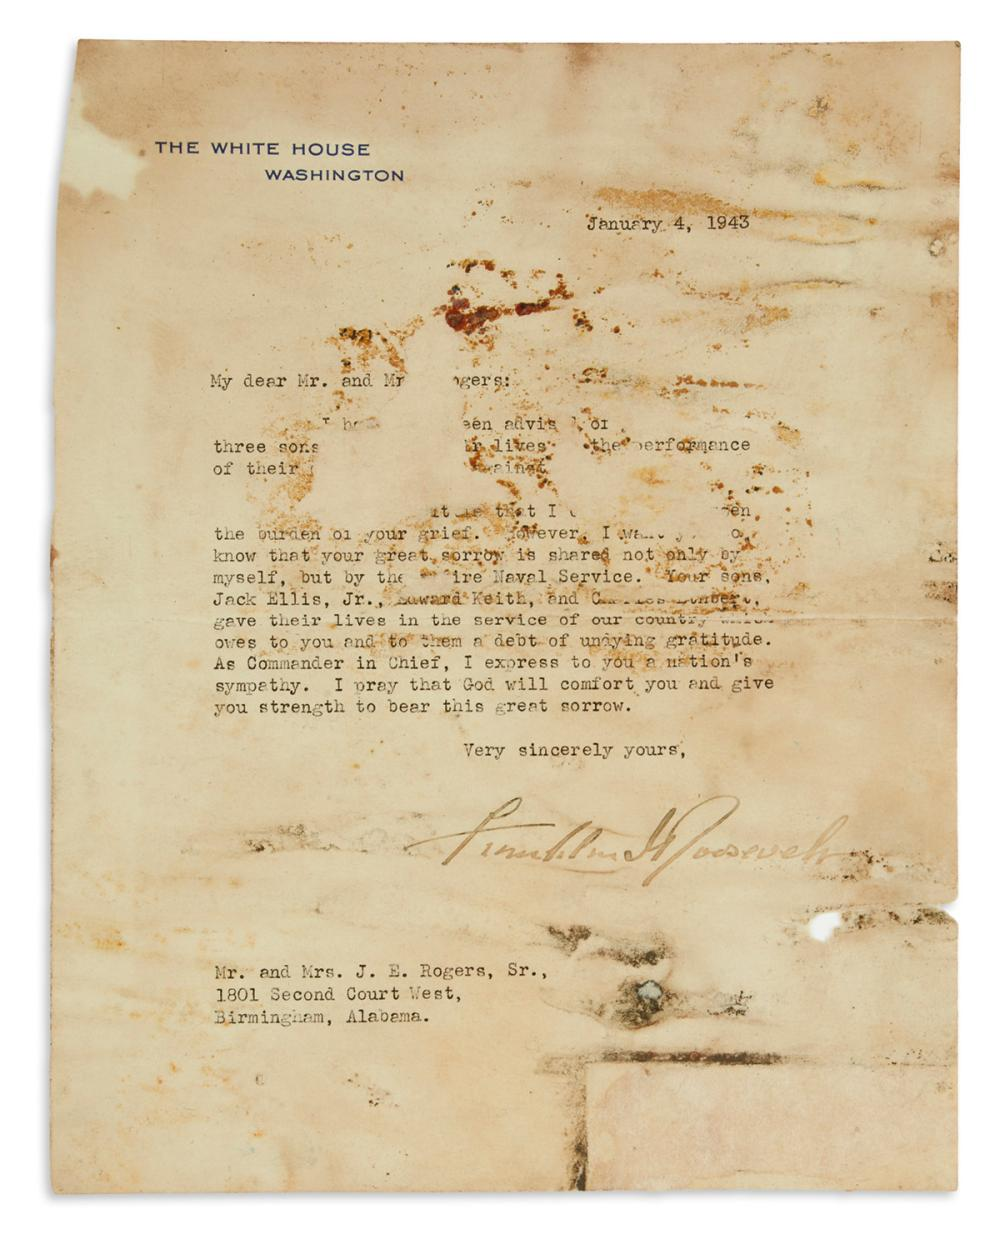 ROOSEVELT, FRANKLIN D. Typed Letter Signed, as President, to Mr. and Mrs. J.E. Rogers, expressing sympathy for the deaths of their thre